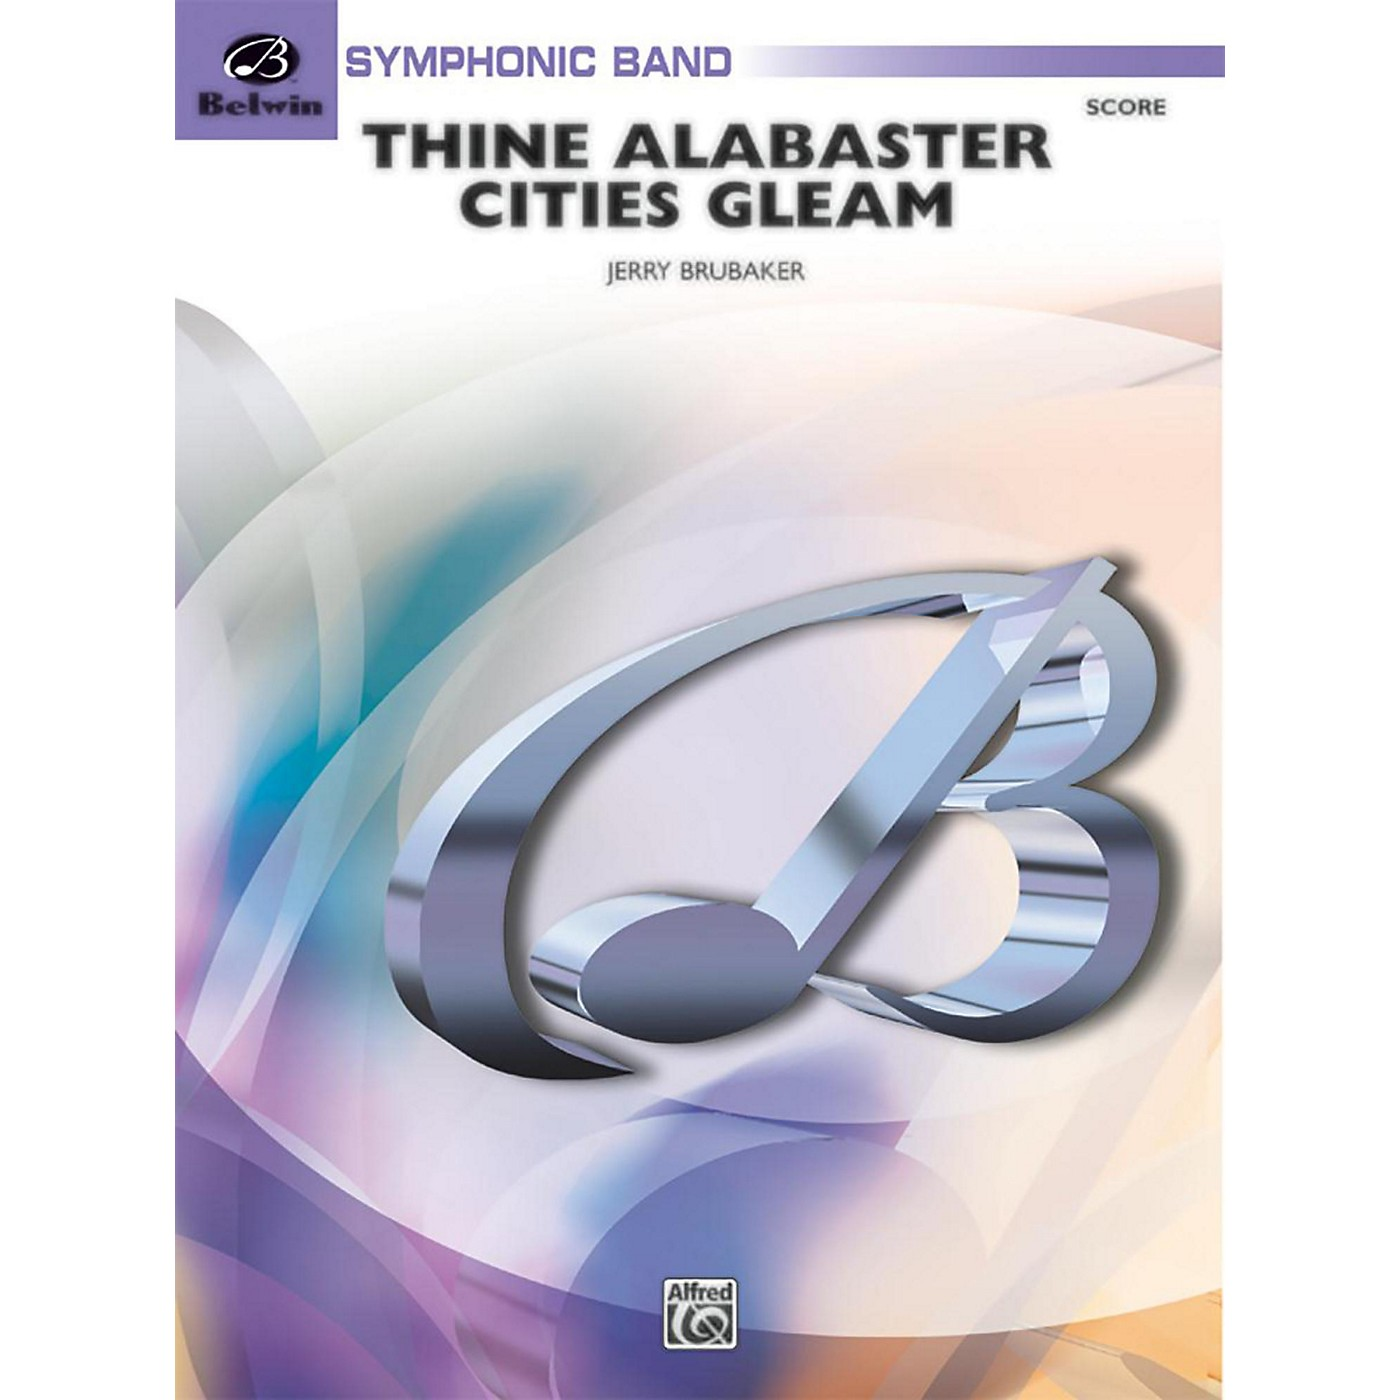 BELWIN Thine Alabaster Cities Gleam (A Message of Hope for America) Grade 4 (Medium) thumbnail